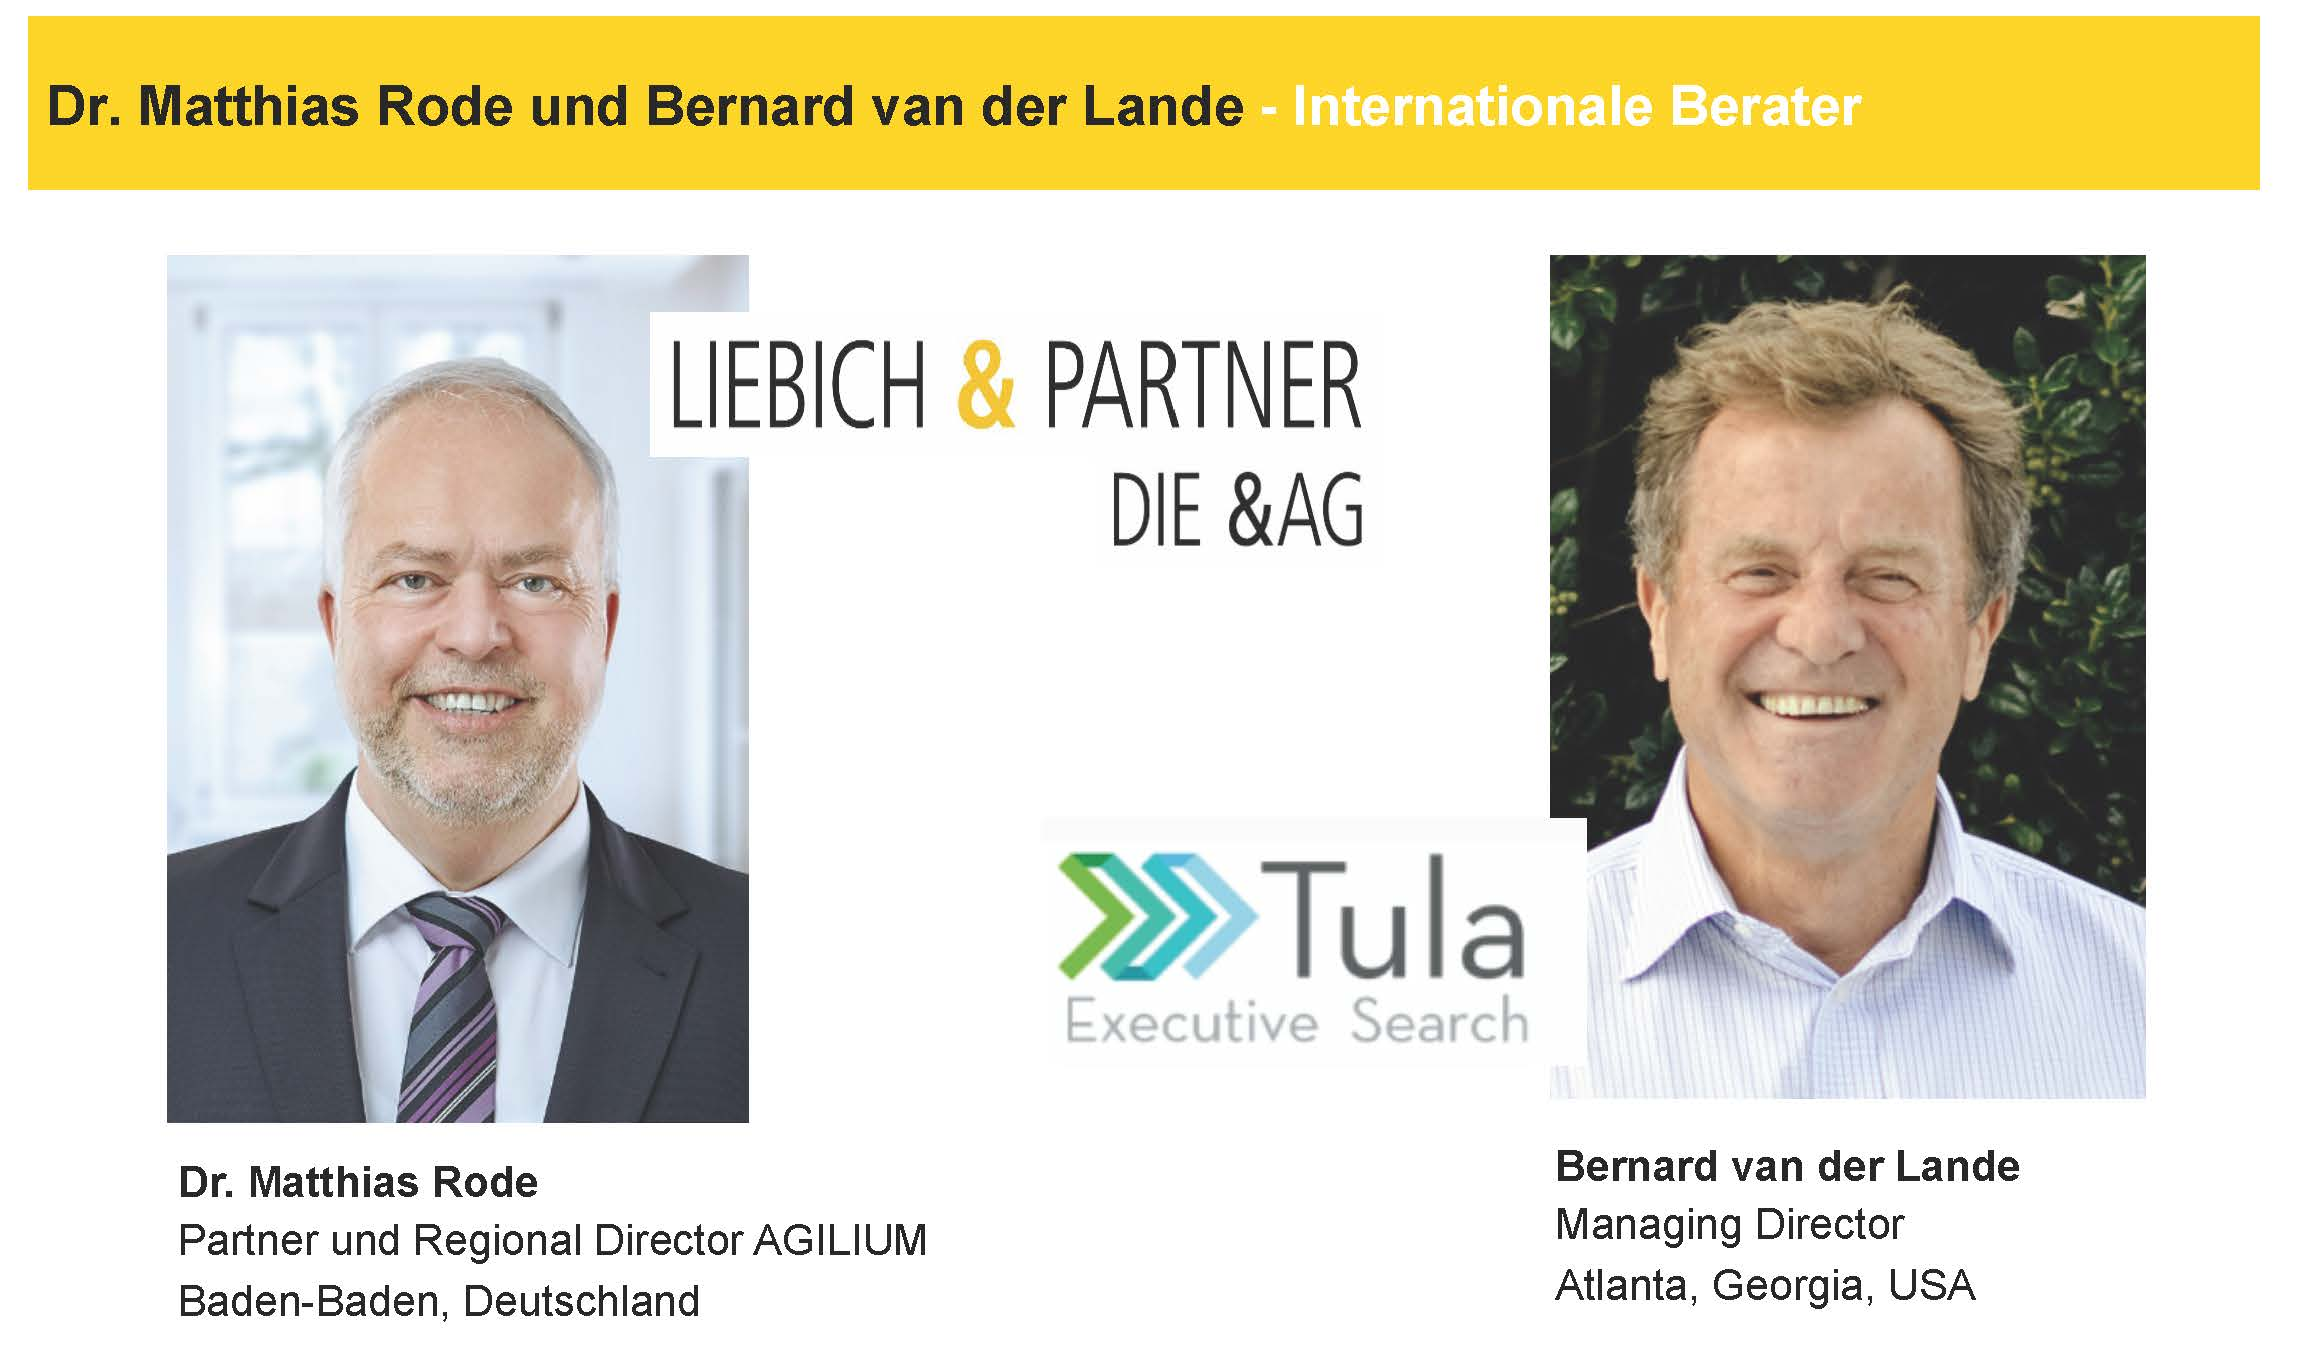 November 2020 – Liebich & Partner, Germany and Tula Executive Search, USA team up for a webinar to support German businesses hiring for positions in the USA